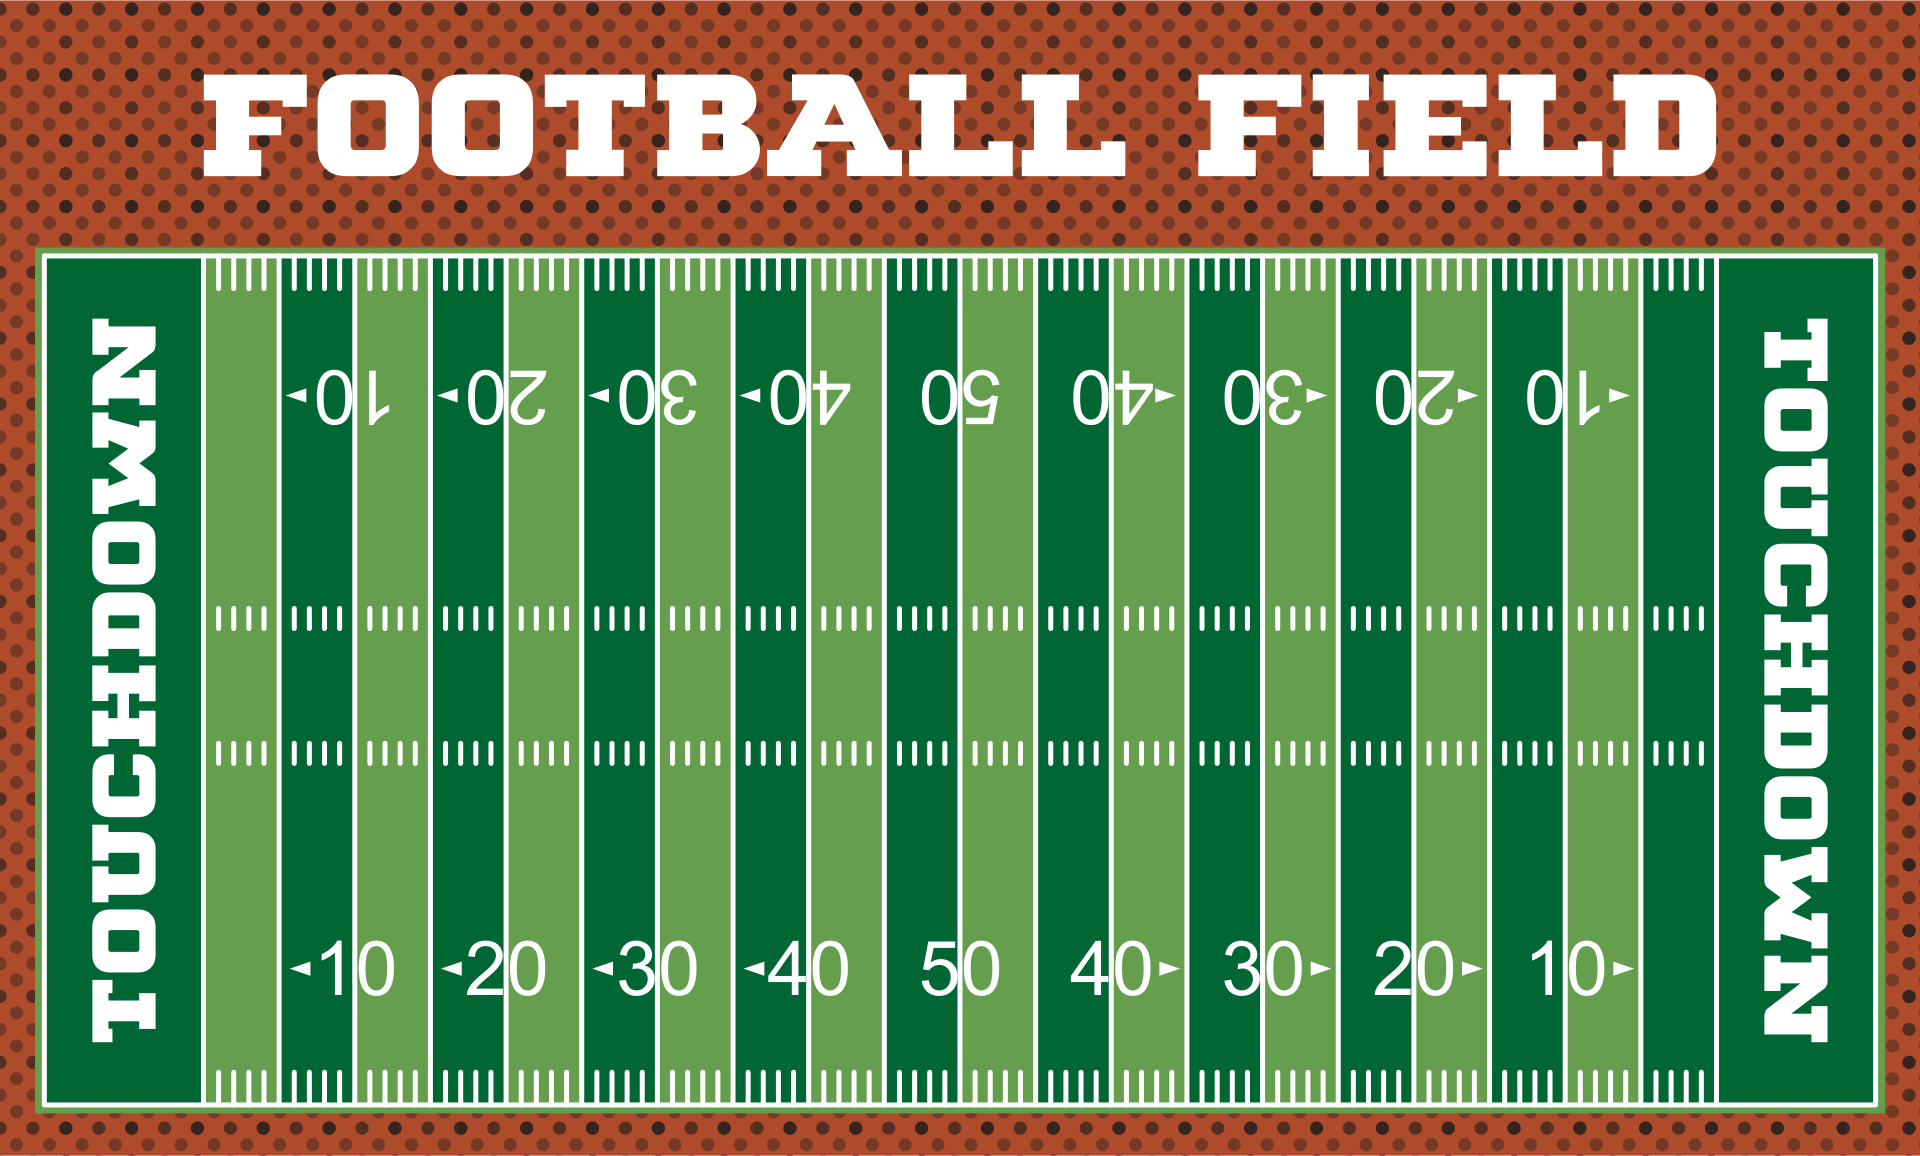 best images of printable football play templates   football play    football field diagram template